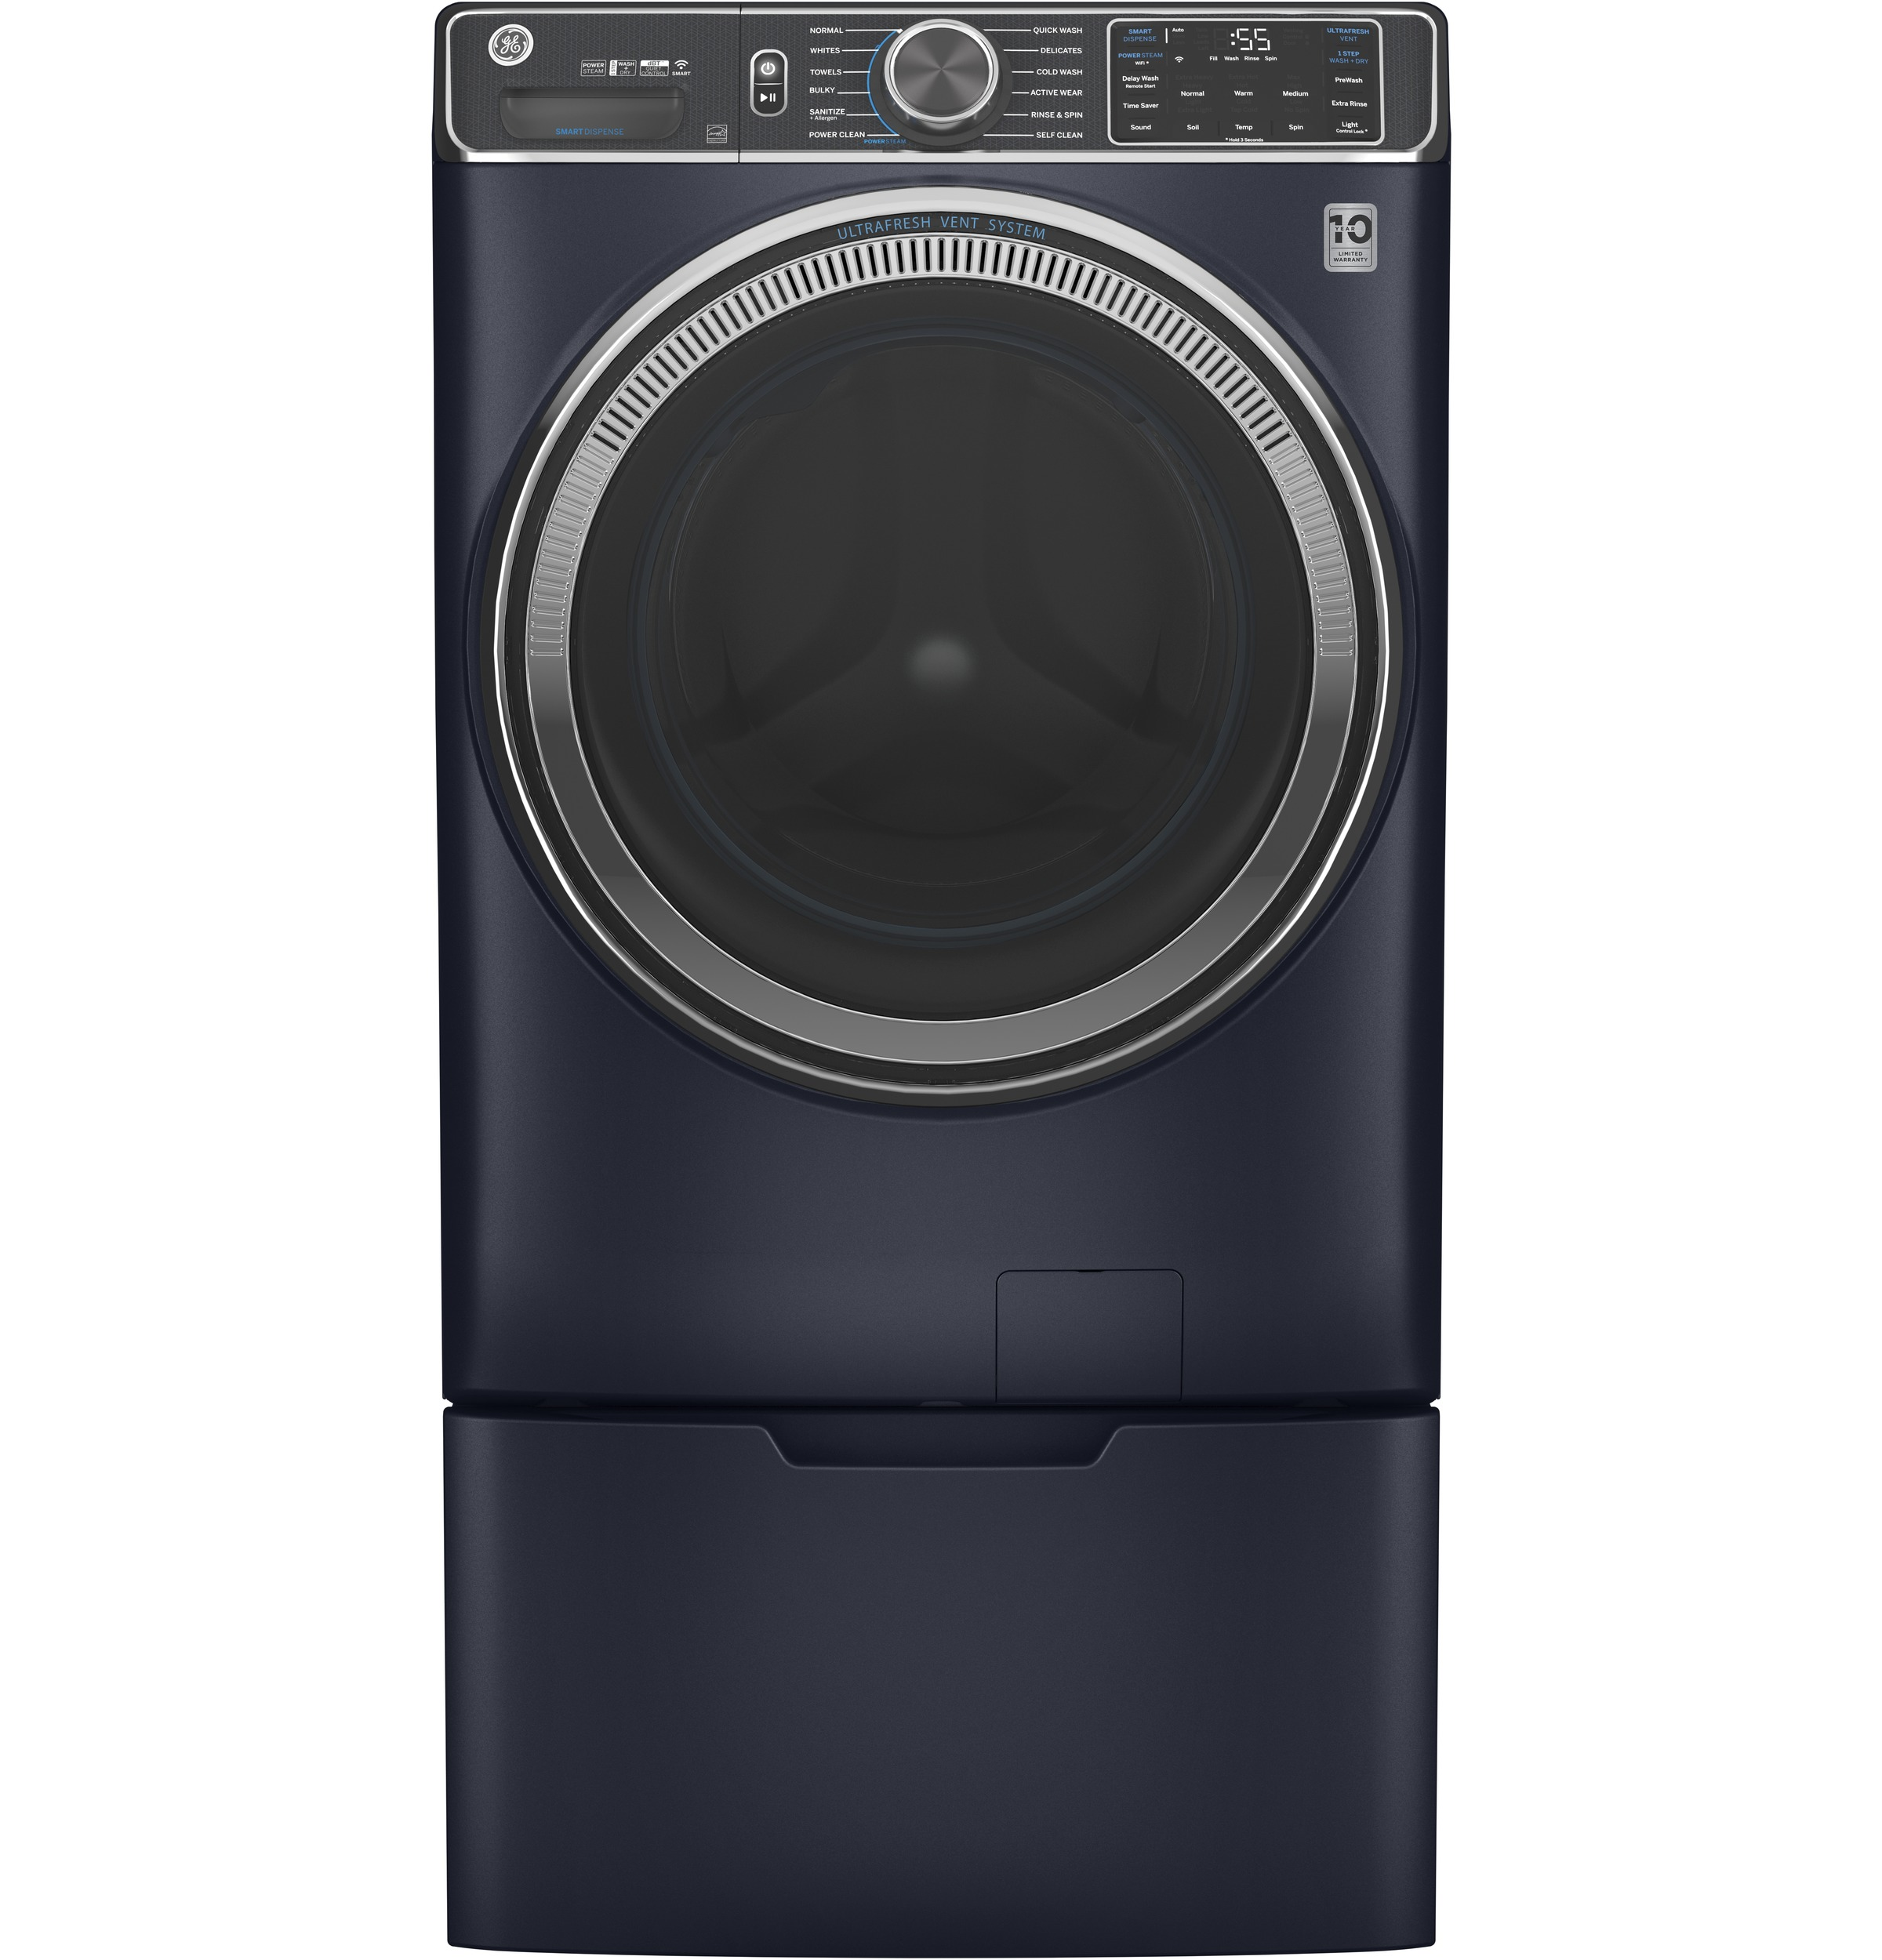 Model: GFW850SPNRS | GE GE® 5.0 cu. ft. Capacity Smart Front Load ENERGY STAR® Steam Washer with SmartDispense™ UltraFresh Vent System with OdorBlock™ and Sanitize + Allergen